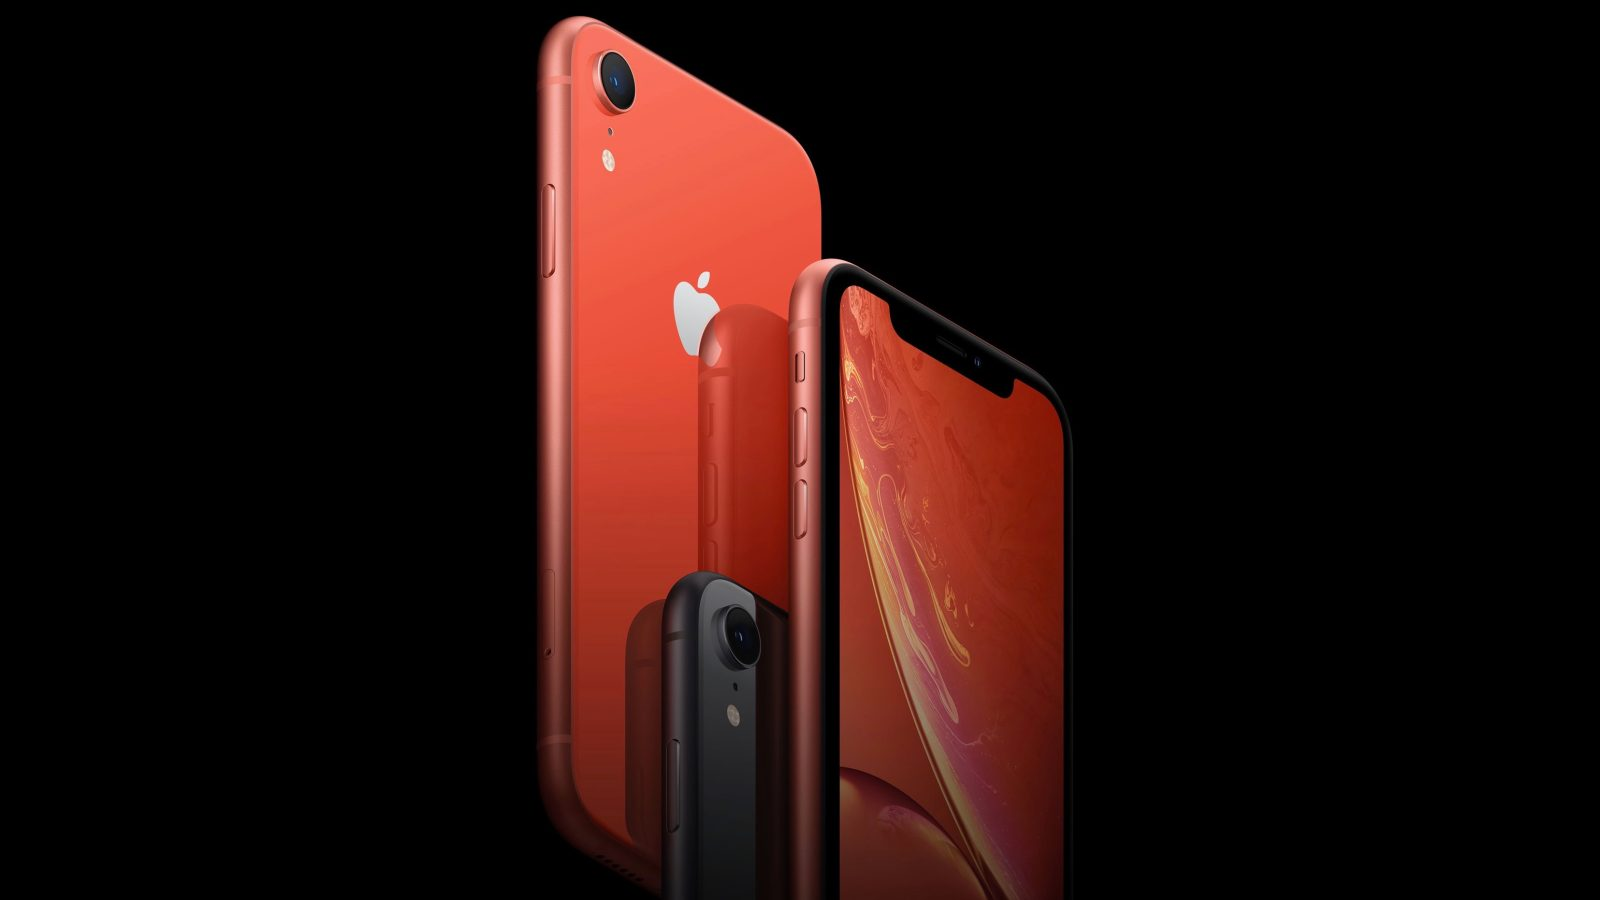 download the iphone xr wallpapers here gallery tomac